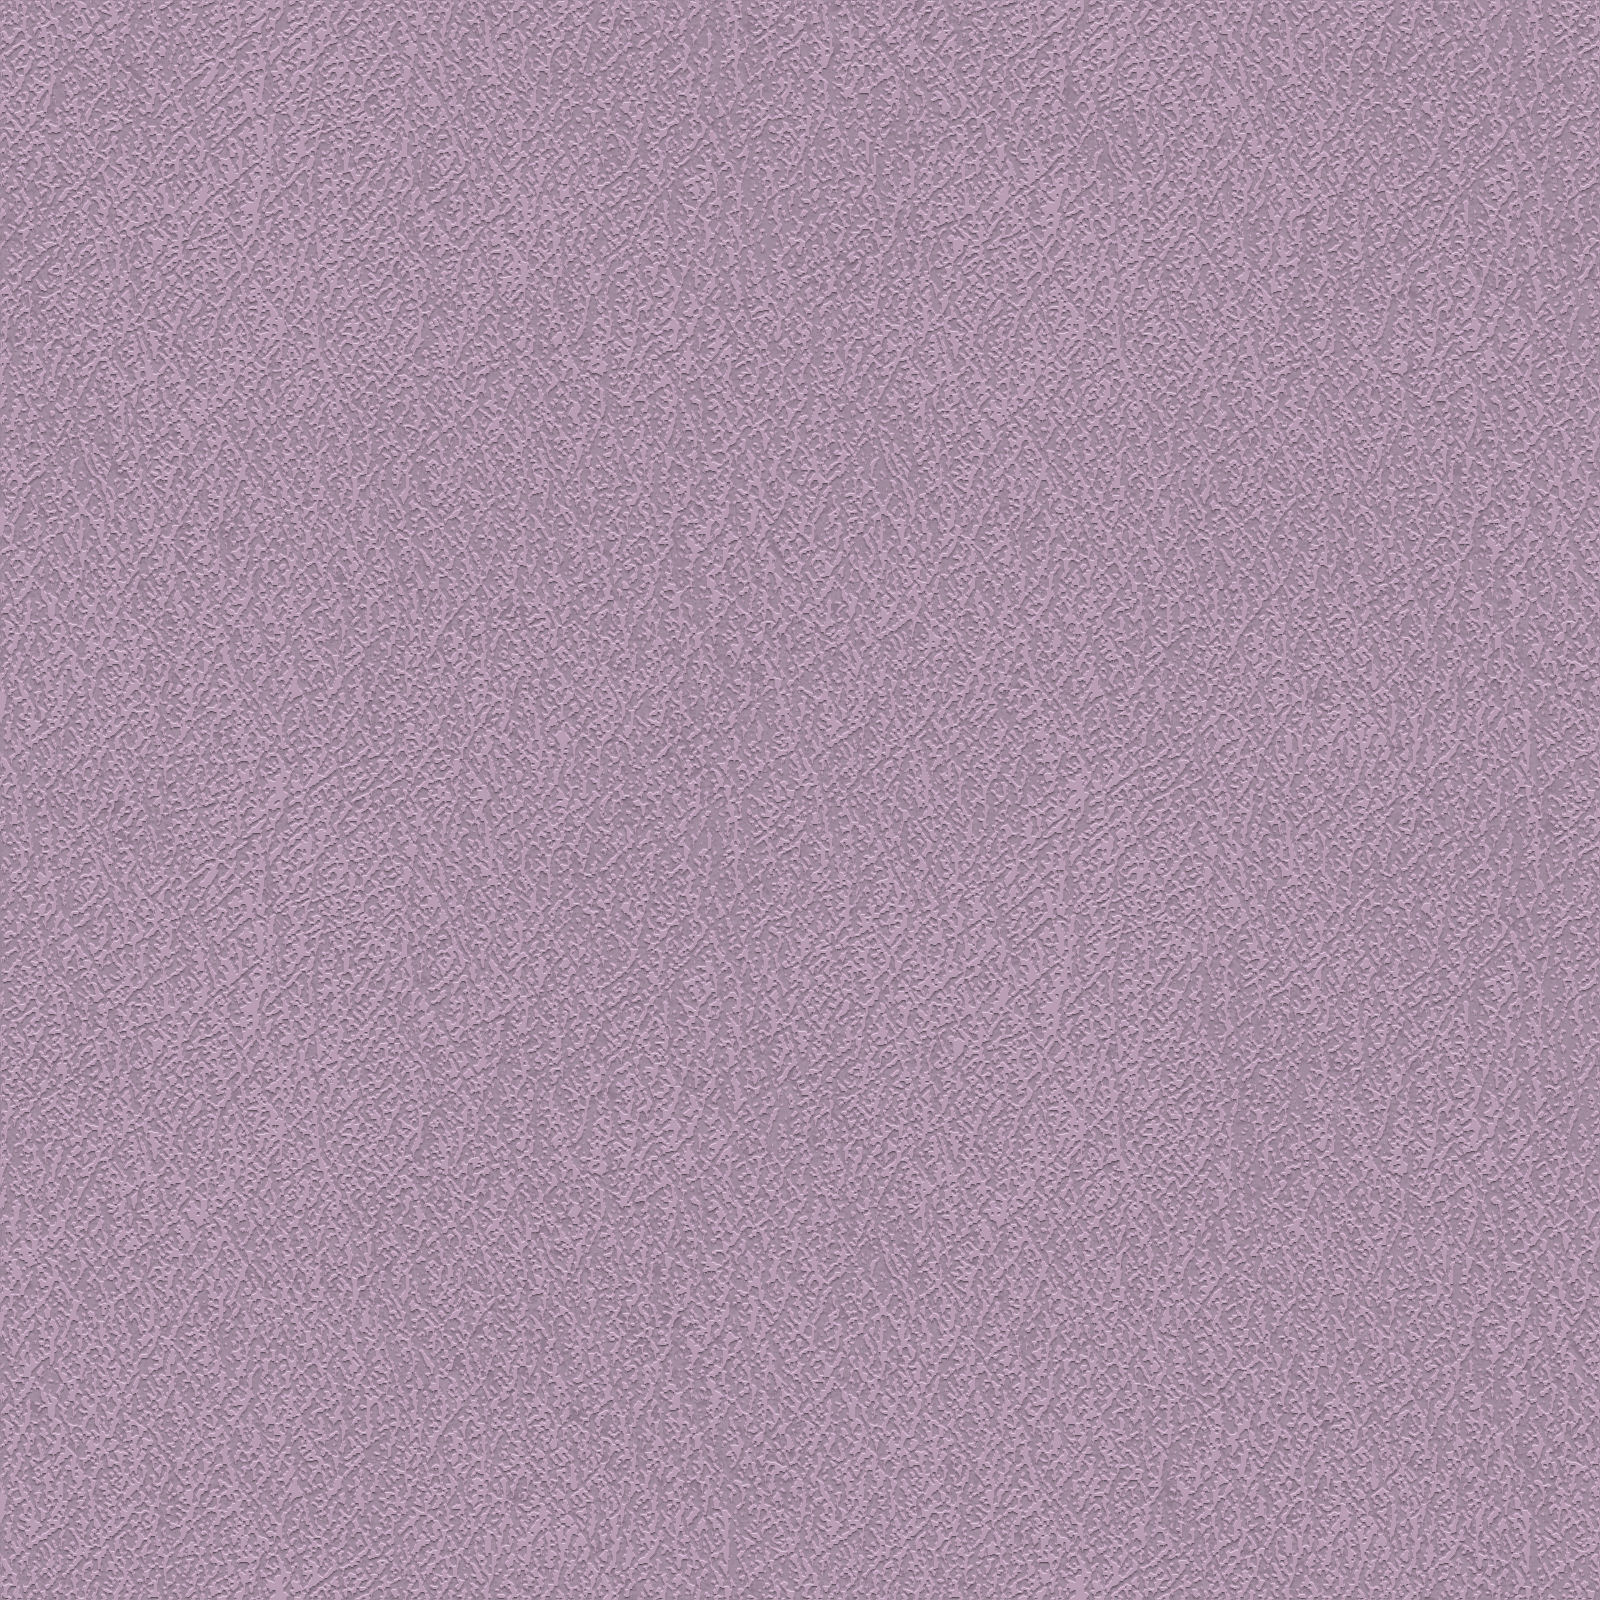 High Resolution Seamless Textures: Purple Wall Texture ...